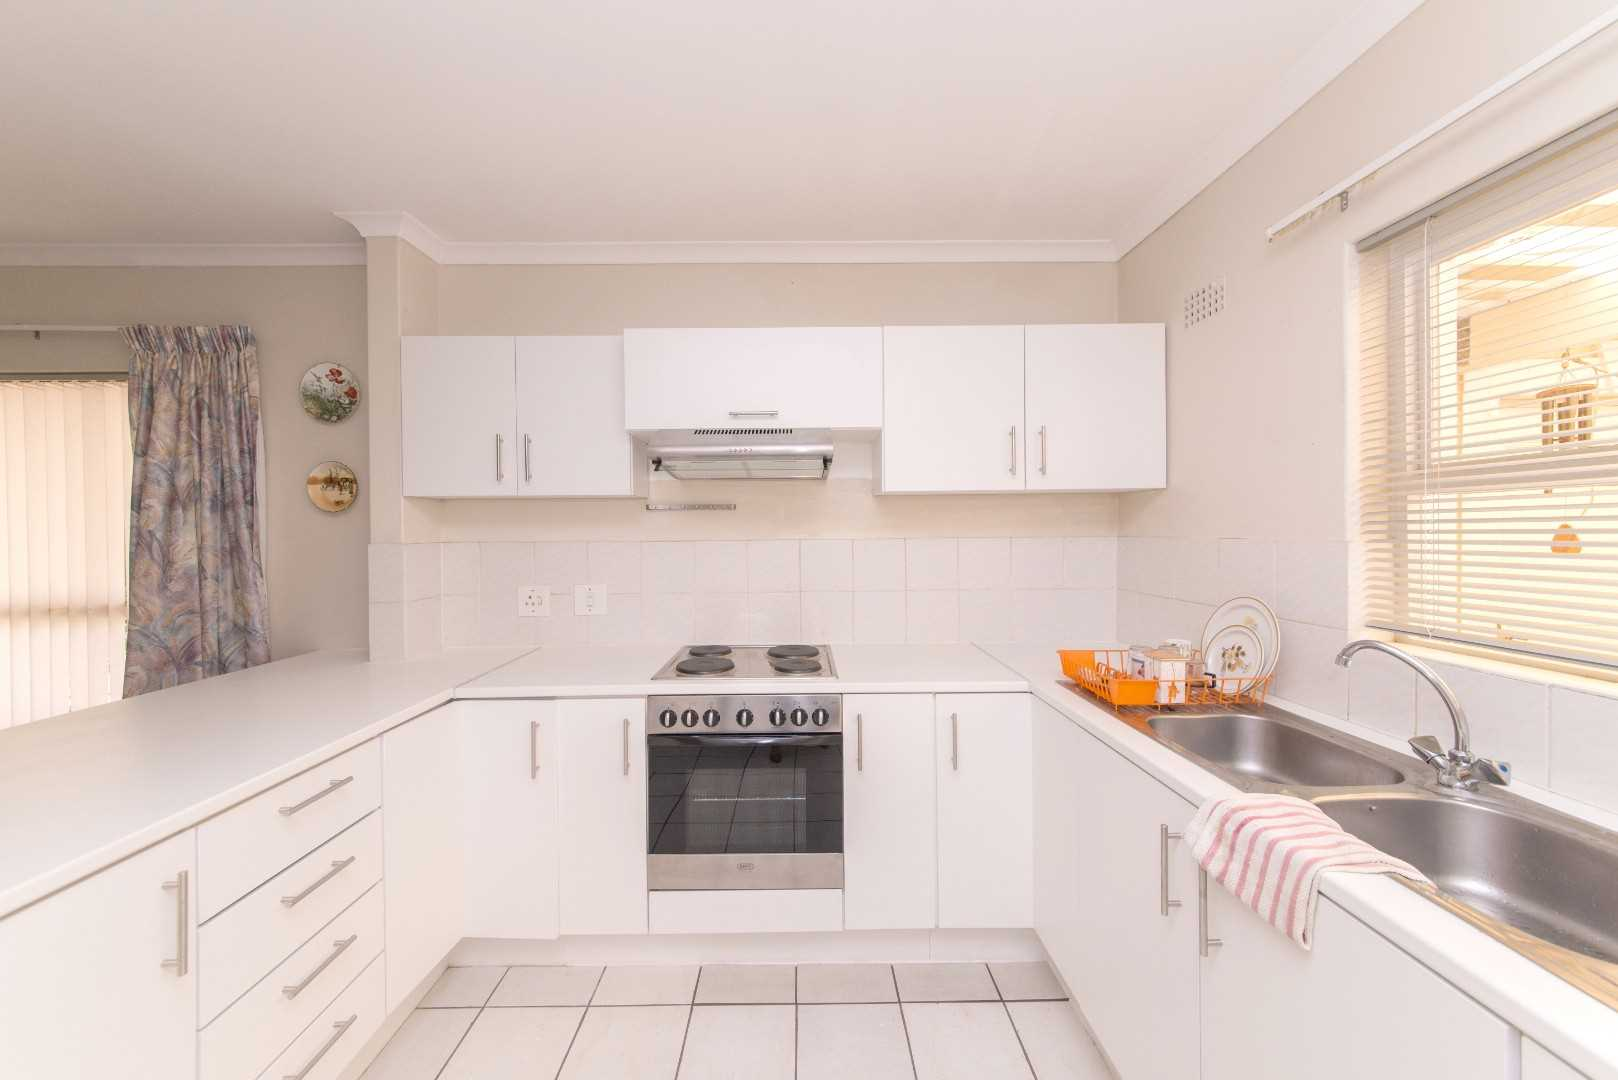 Upgraded kitchen with electric oven and extractor fan